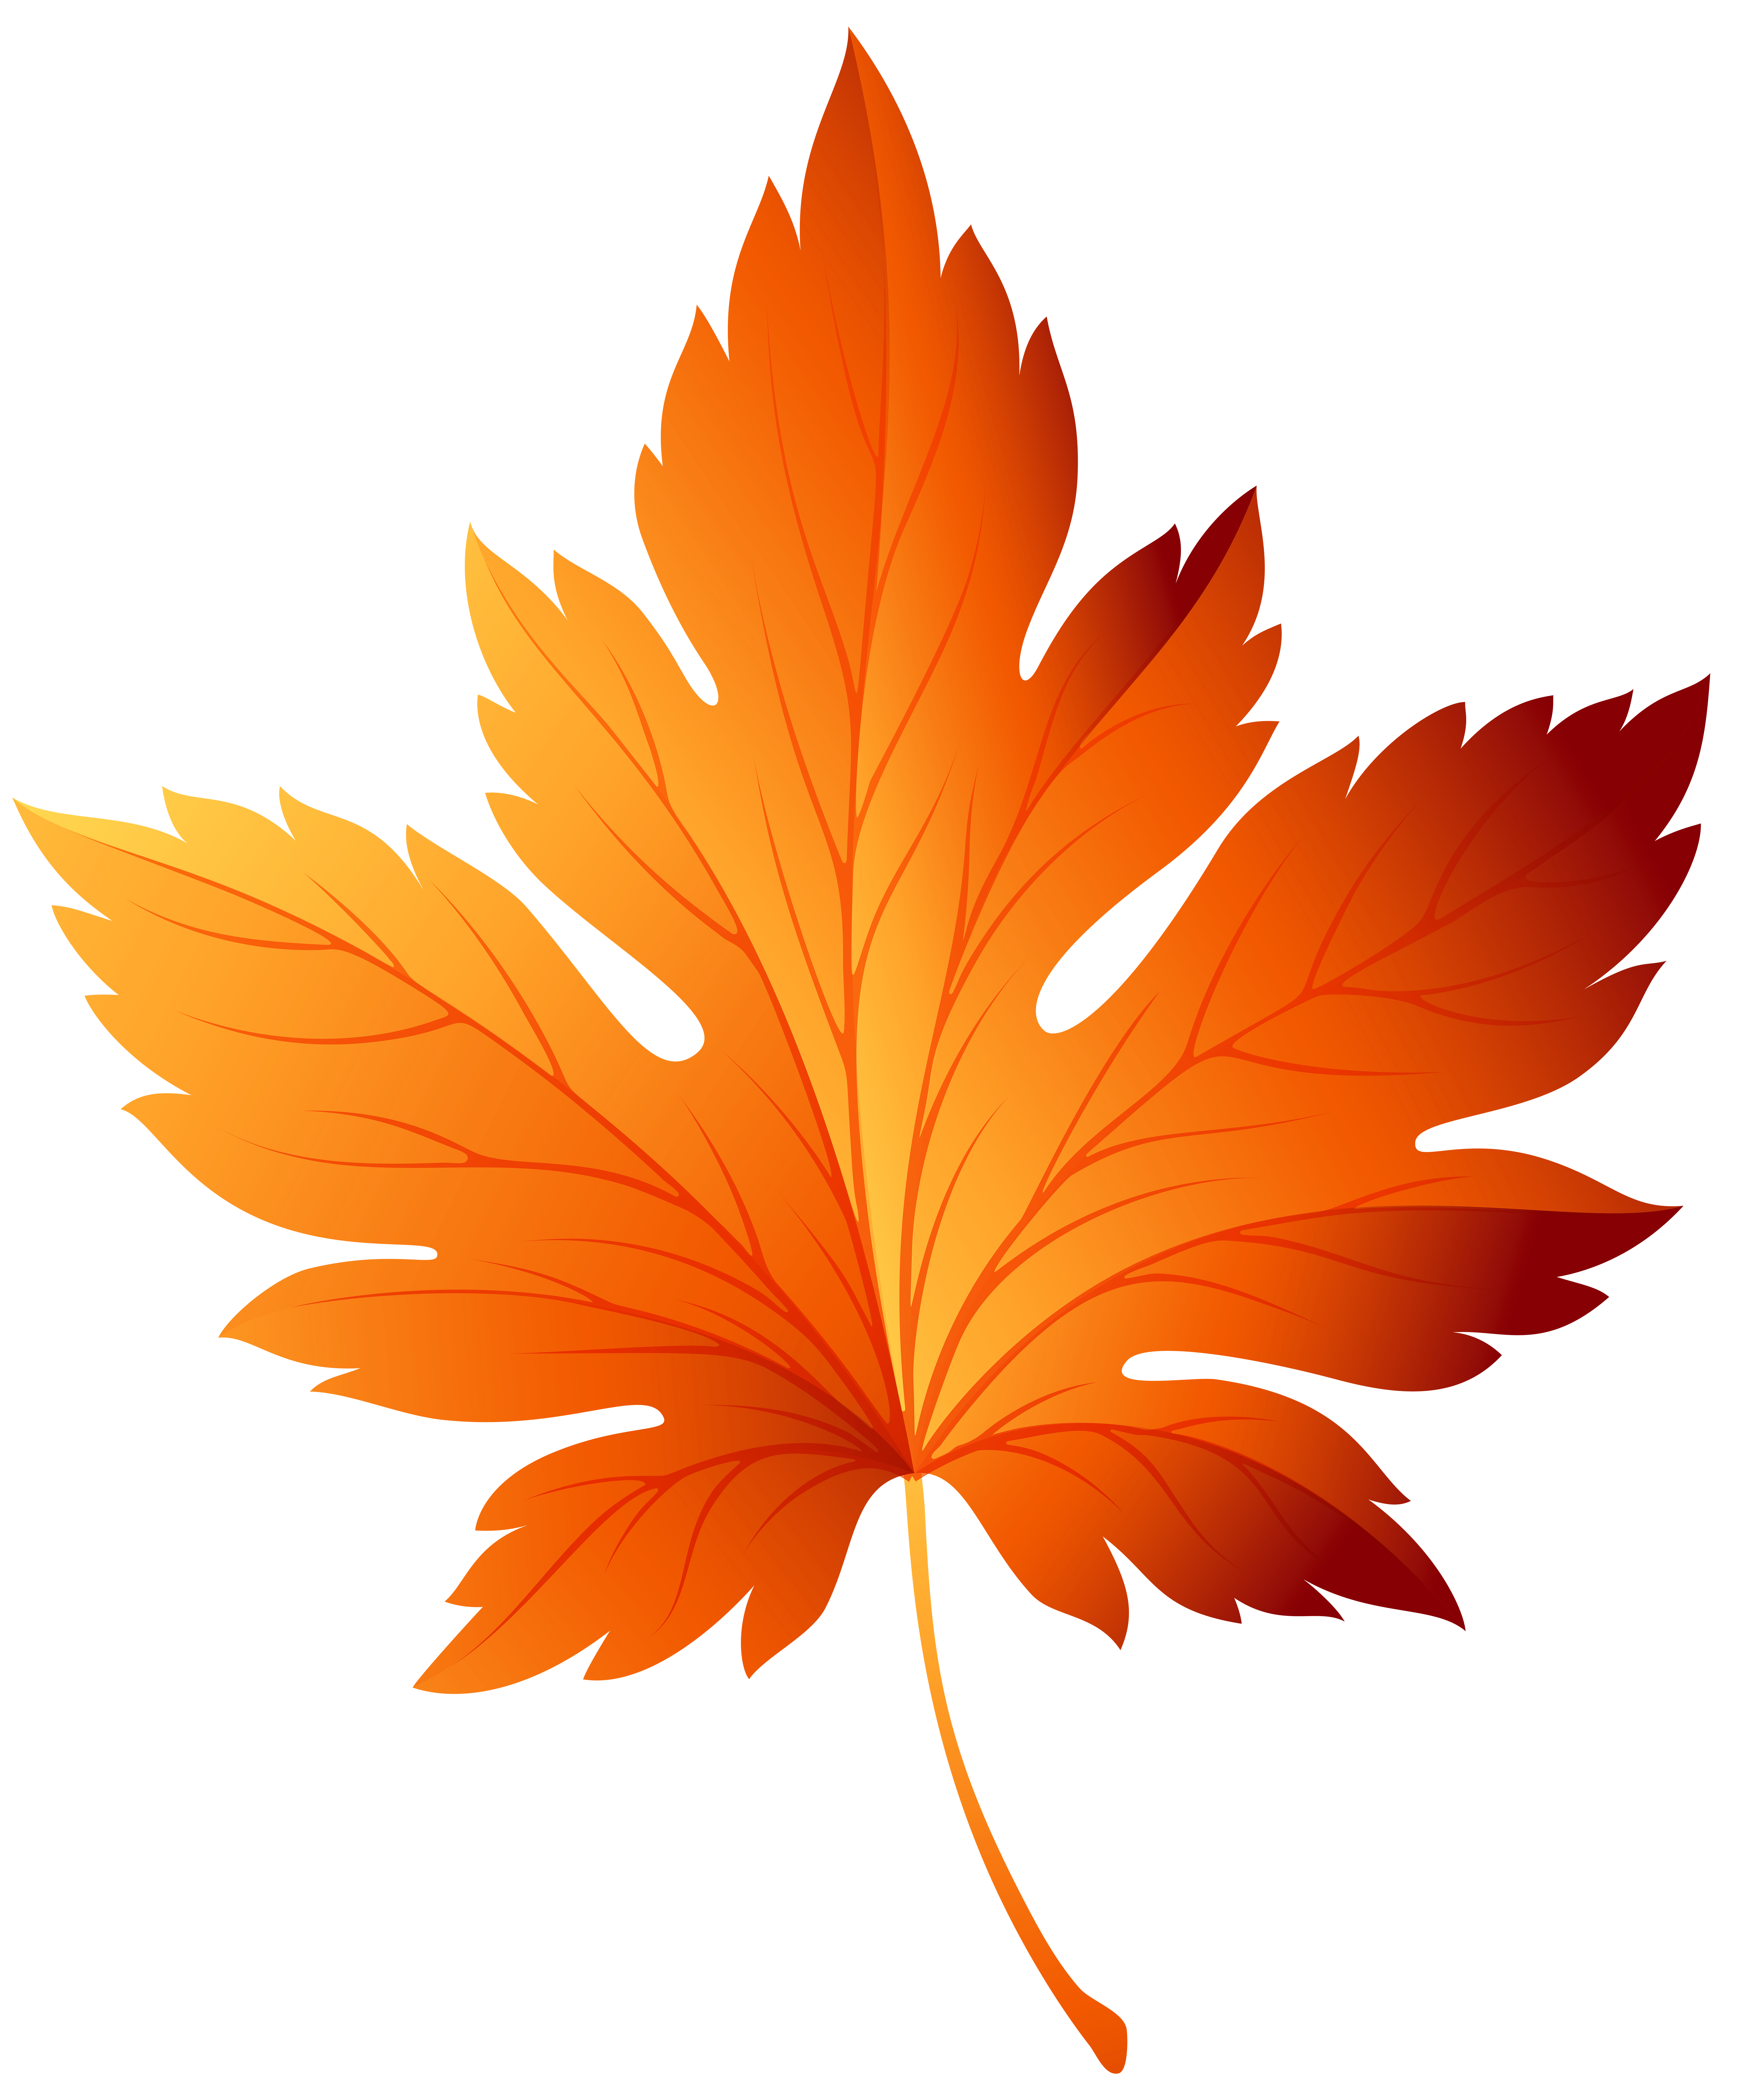 Outdoors clipart cute fall leaves. Autumn leaf transparent picture